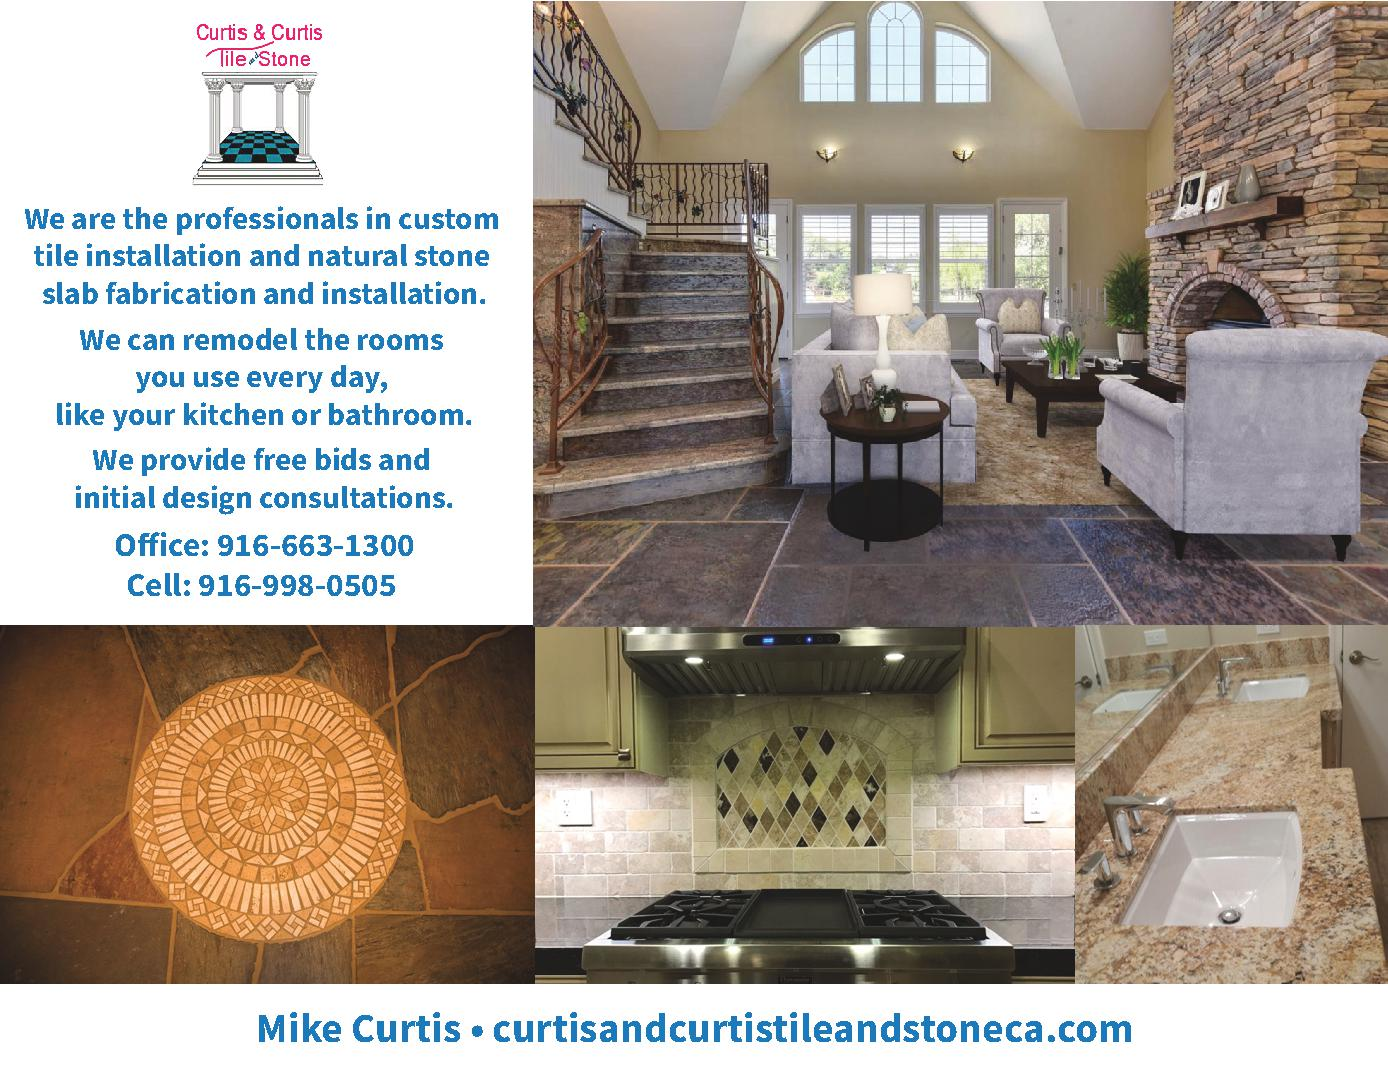 Curtis & Curtis Tile and Stone